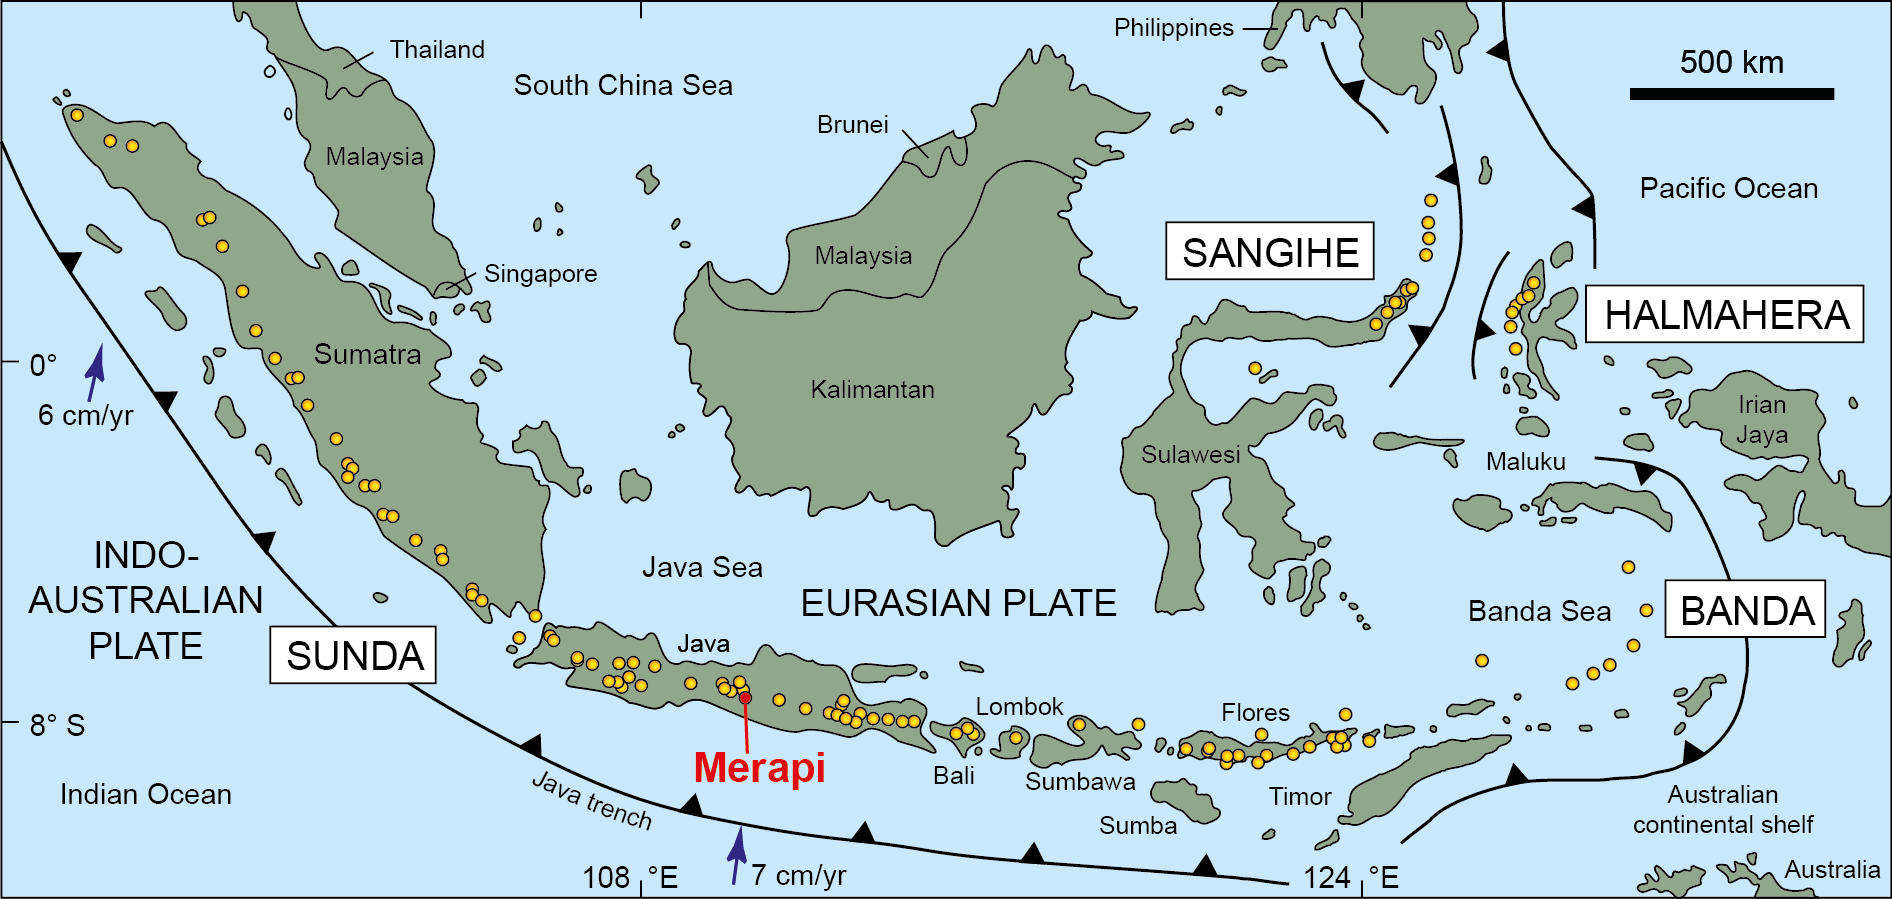 an overview of indonesia Indonesia has an estimated 17,508 islands, but only 6,000 islands are inhabited bahasa indonesia is the official language of indonesia it was the malay language mainly spoken in the riau islands and was later influenced by the local languages, cultures, and foreign languages that came with trade and.